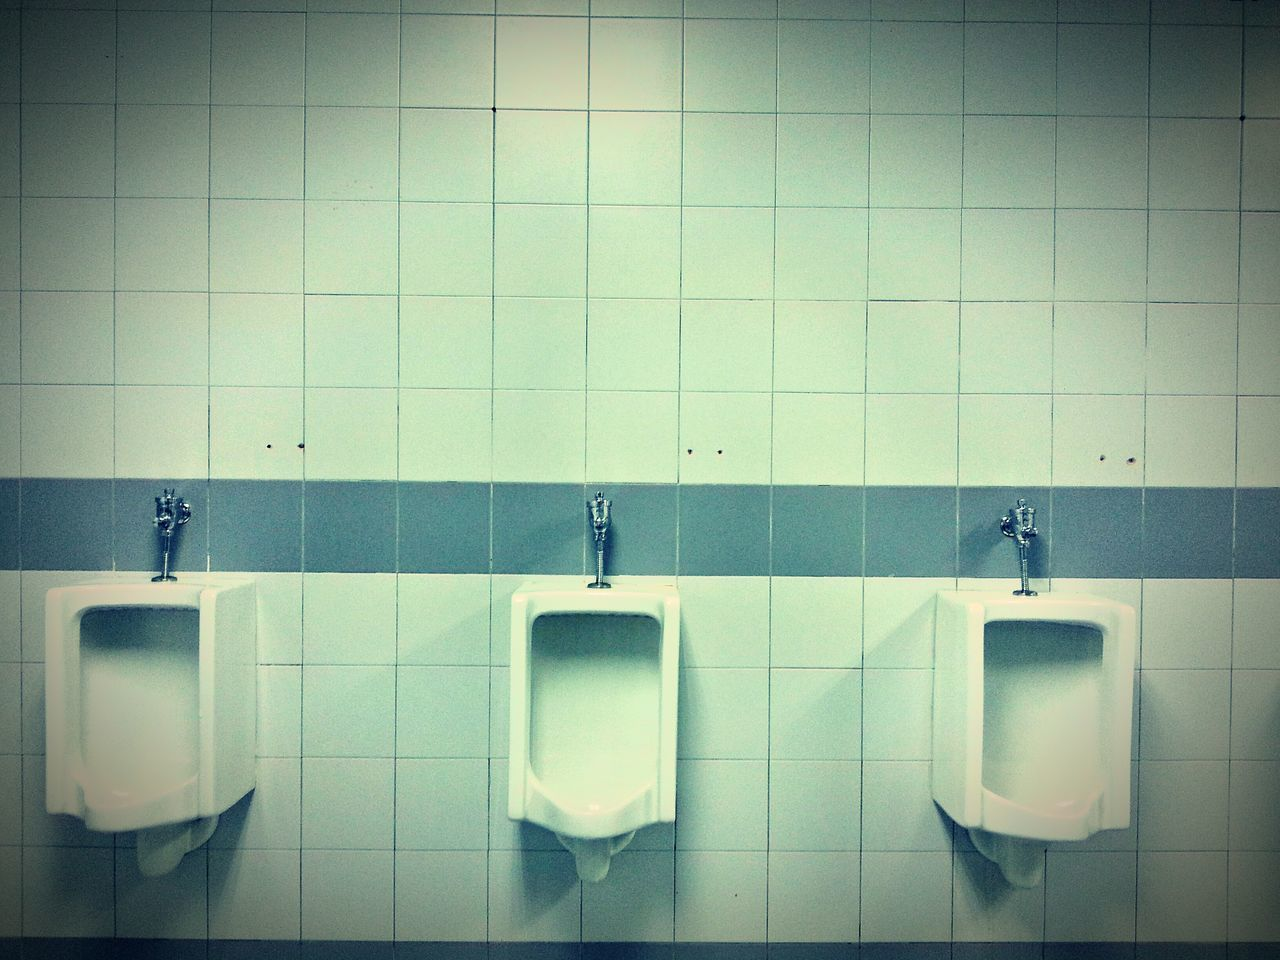 urinal, public building, public restroom, indoors, bathroom, in a row, tile, urgency, repetition, convenience, hygiene, no people, day, flushing toilet